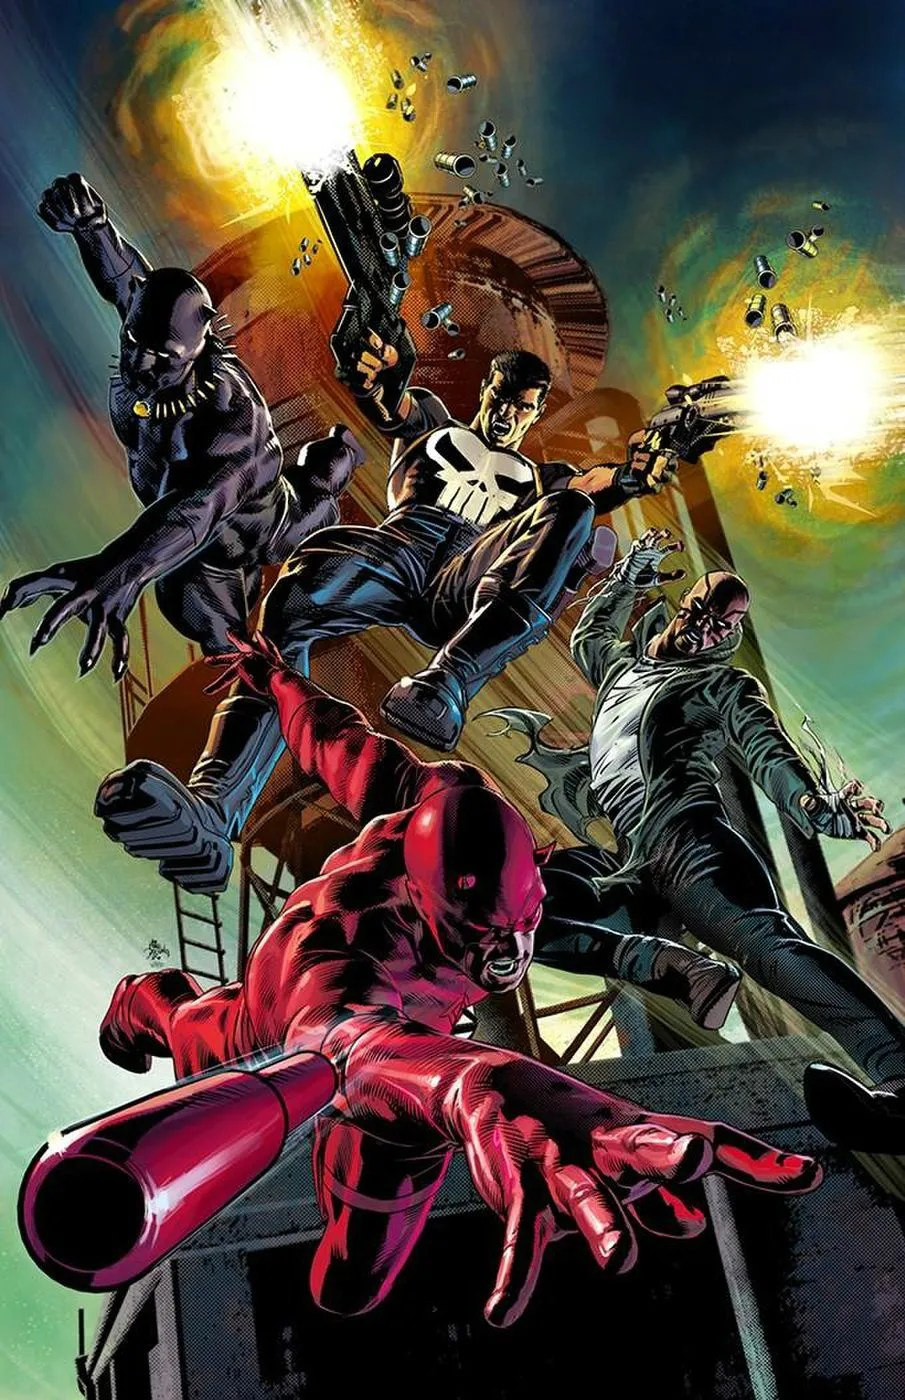 Marvel-Knights-1-Cover-Art-Promotional-Image.jpg?q=50&fit=crop&w=738